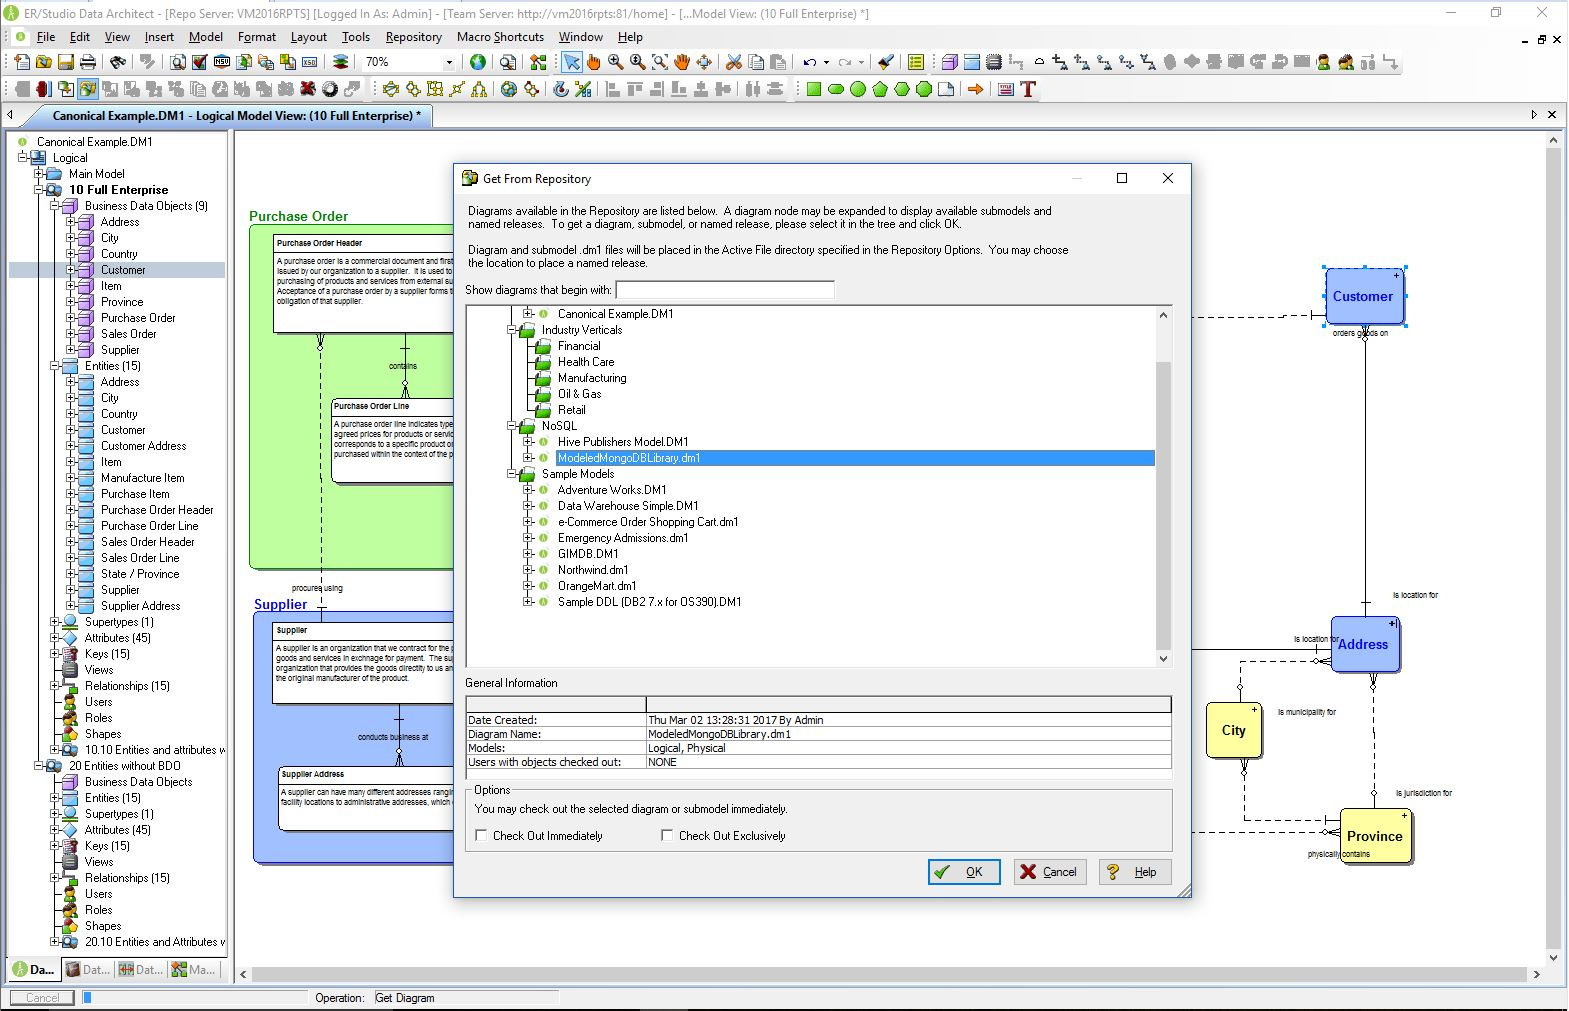 Download ER Studio Data Architect 17.1 Free